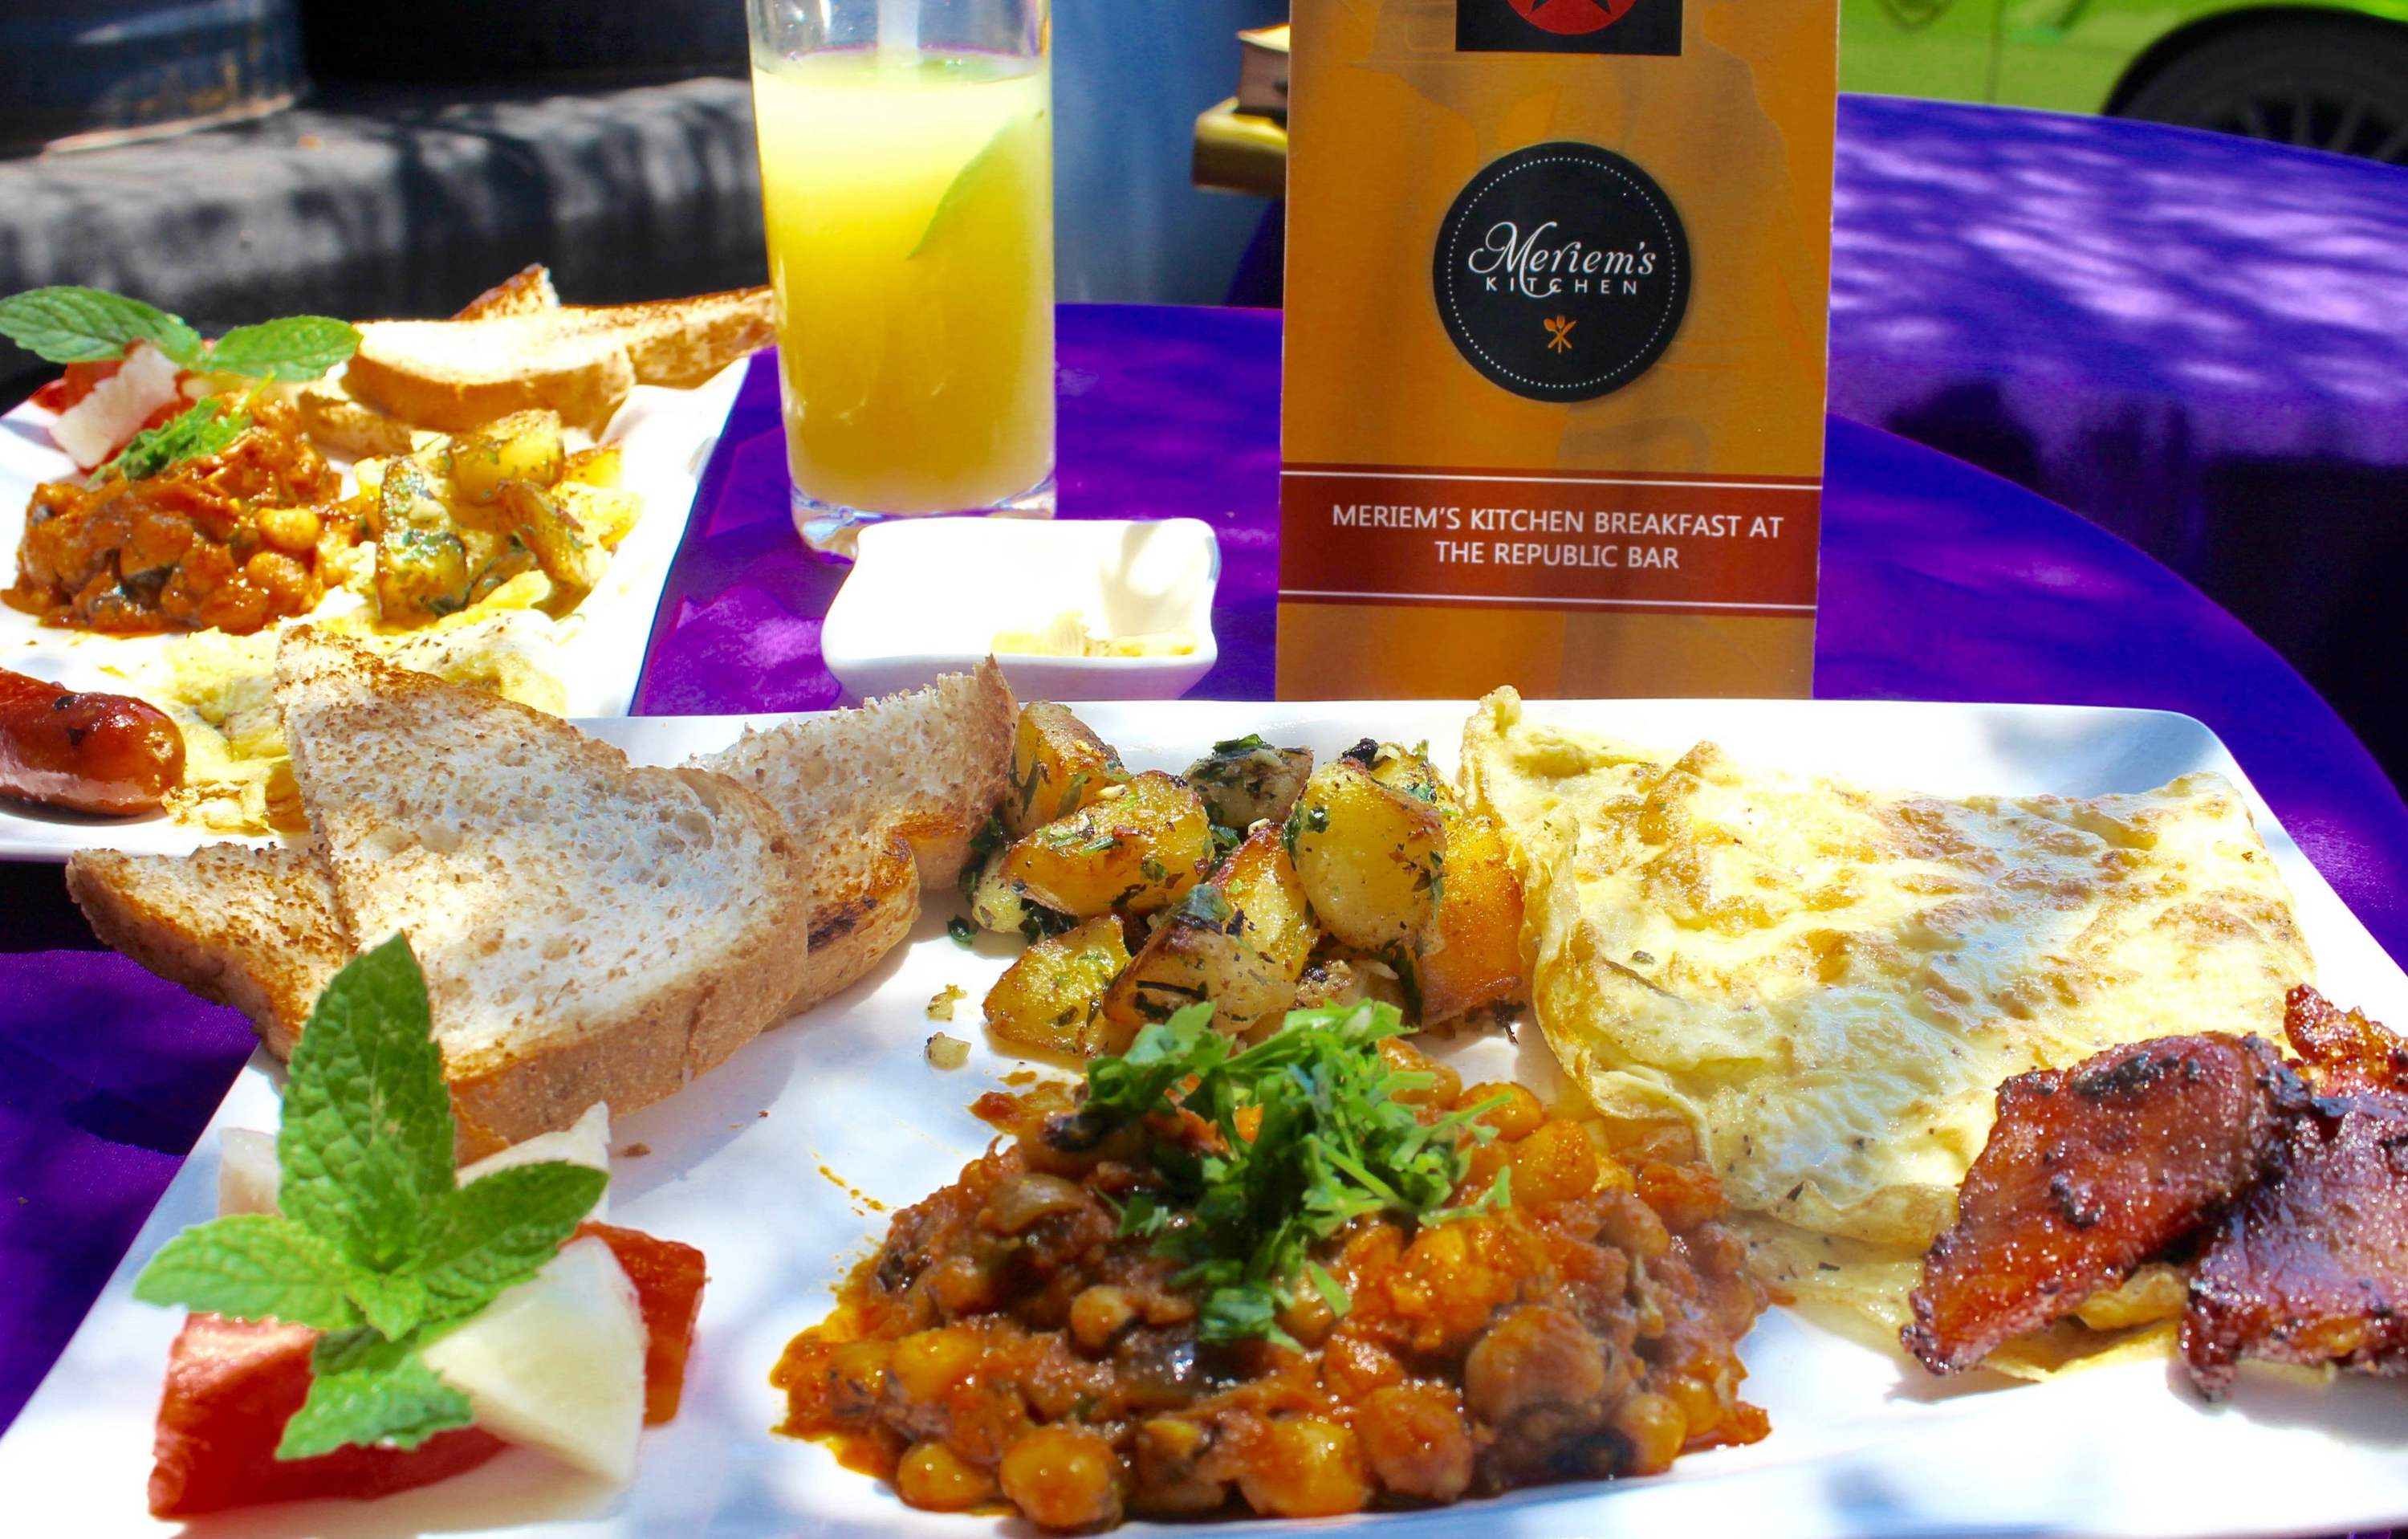 Brunch with Meriem's Kitchen at Republic Bar & Grill